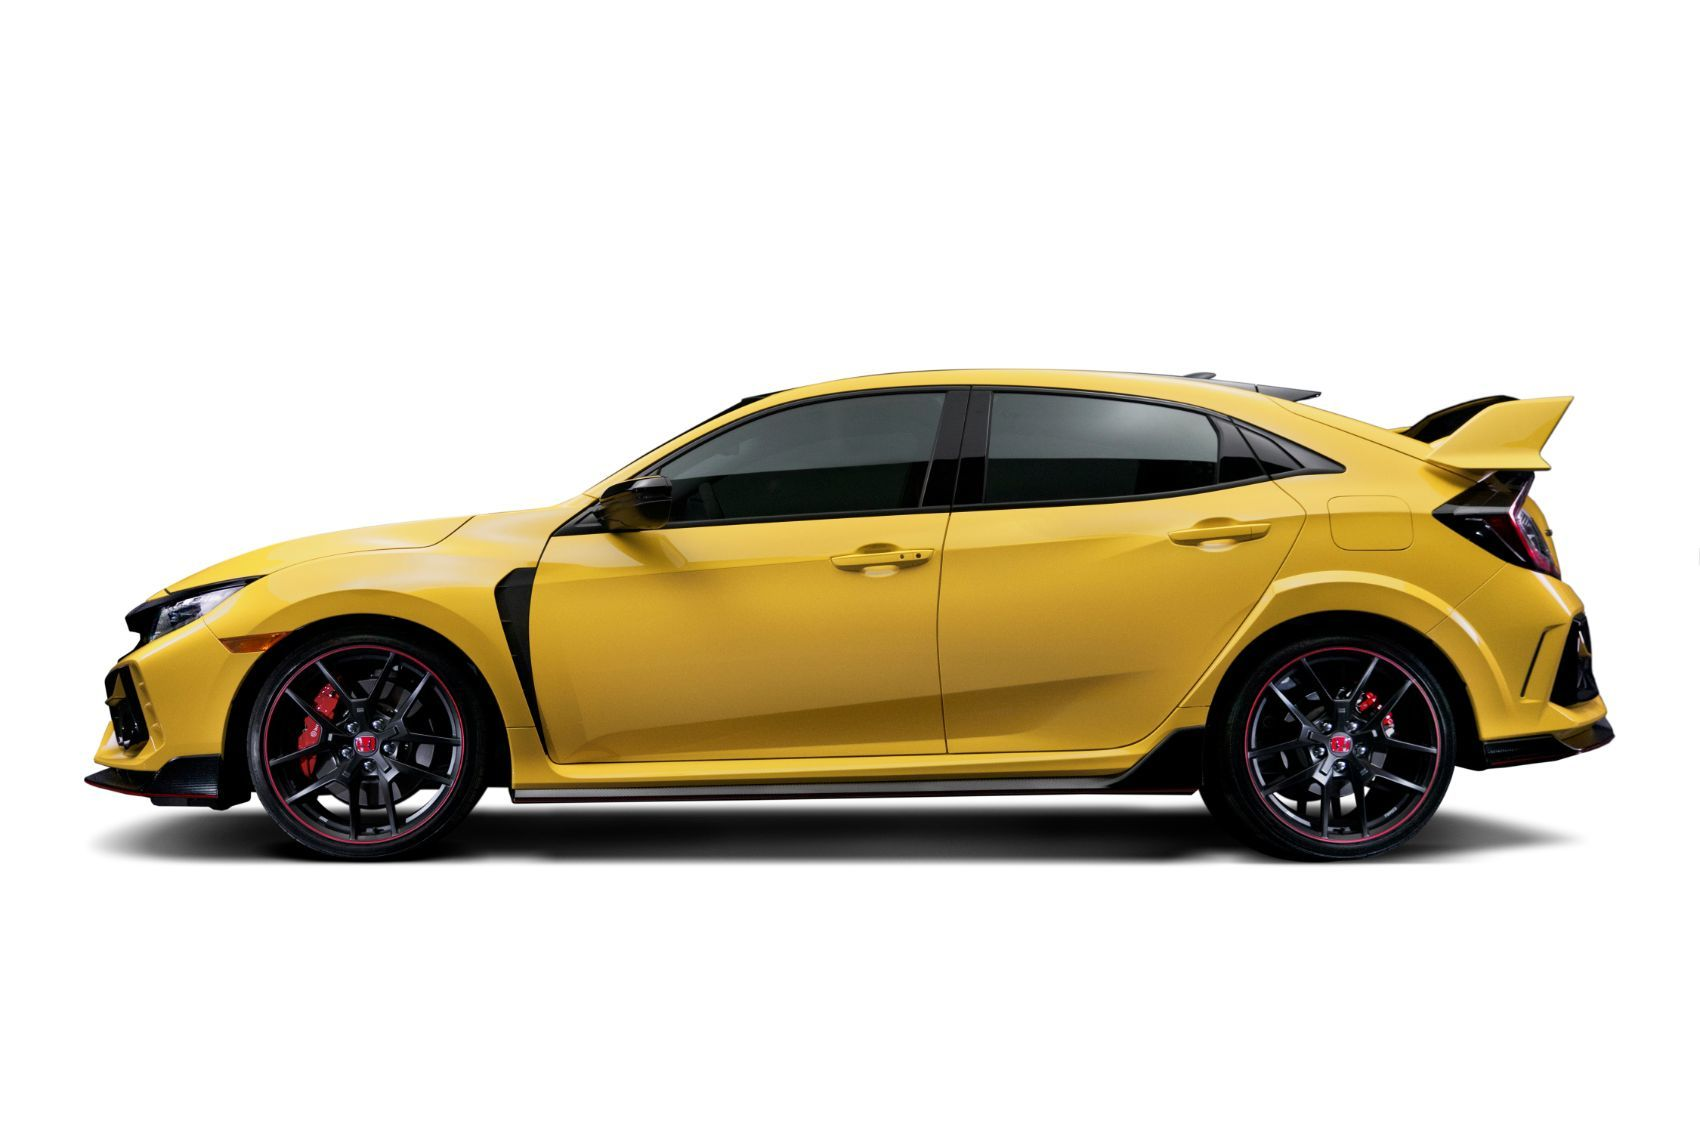 01 2021 Honda Civic Type R Limited Edition